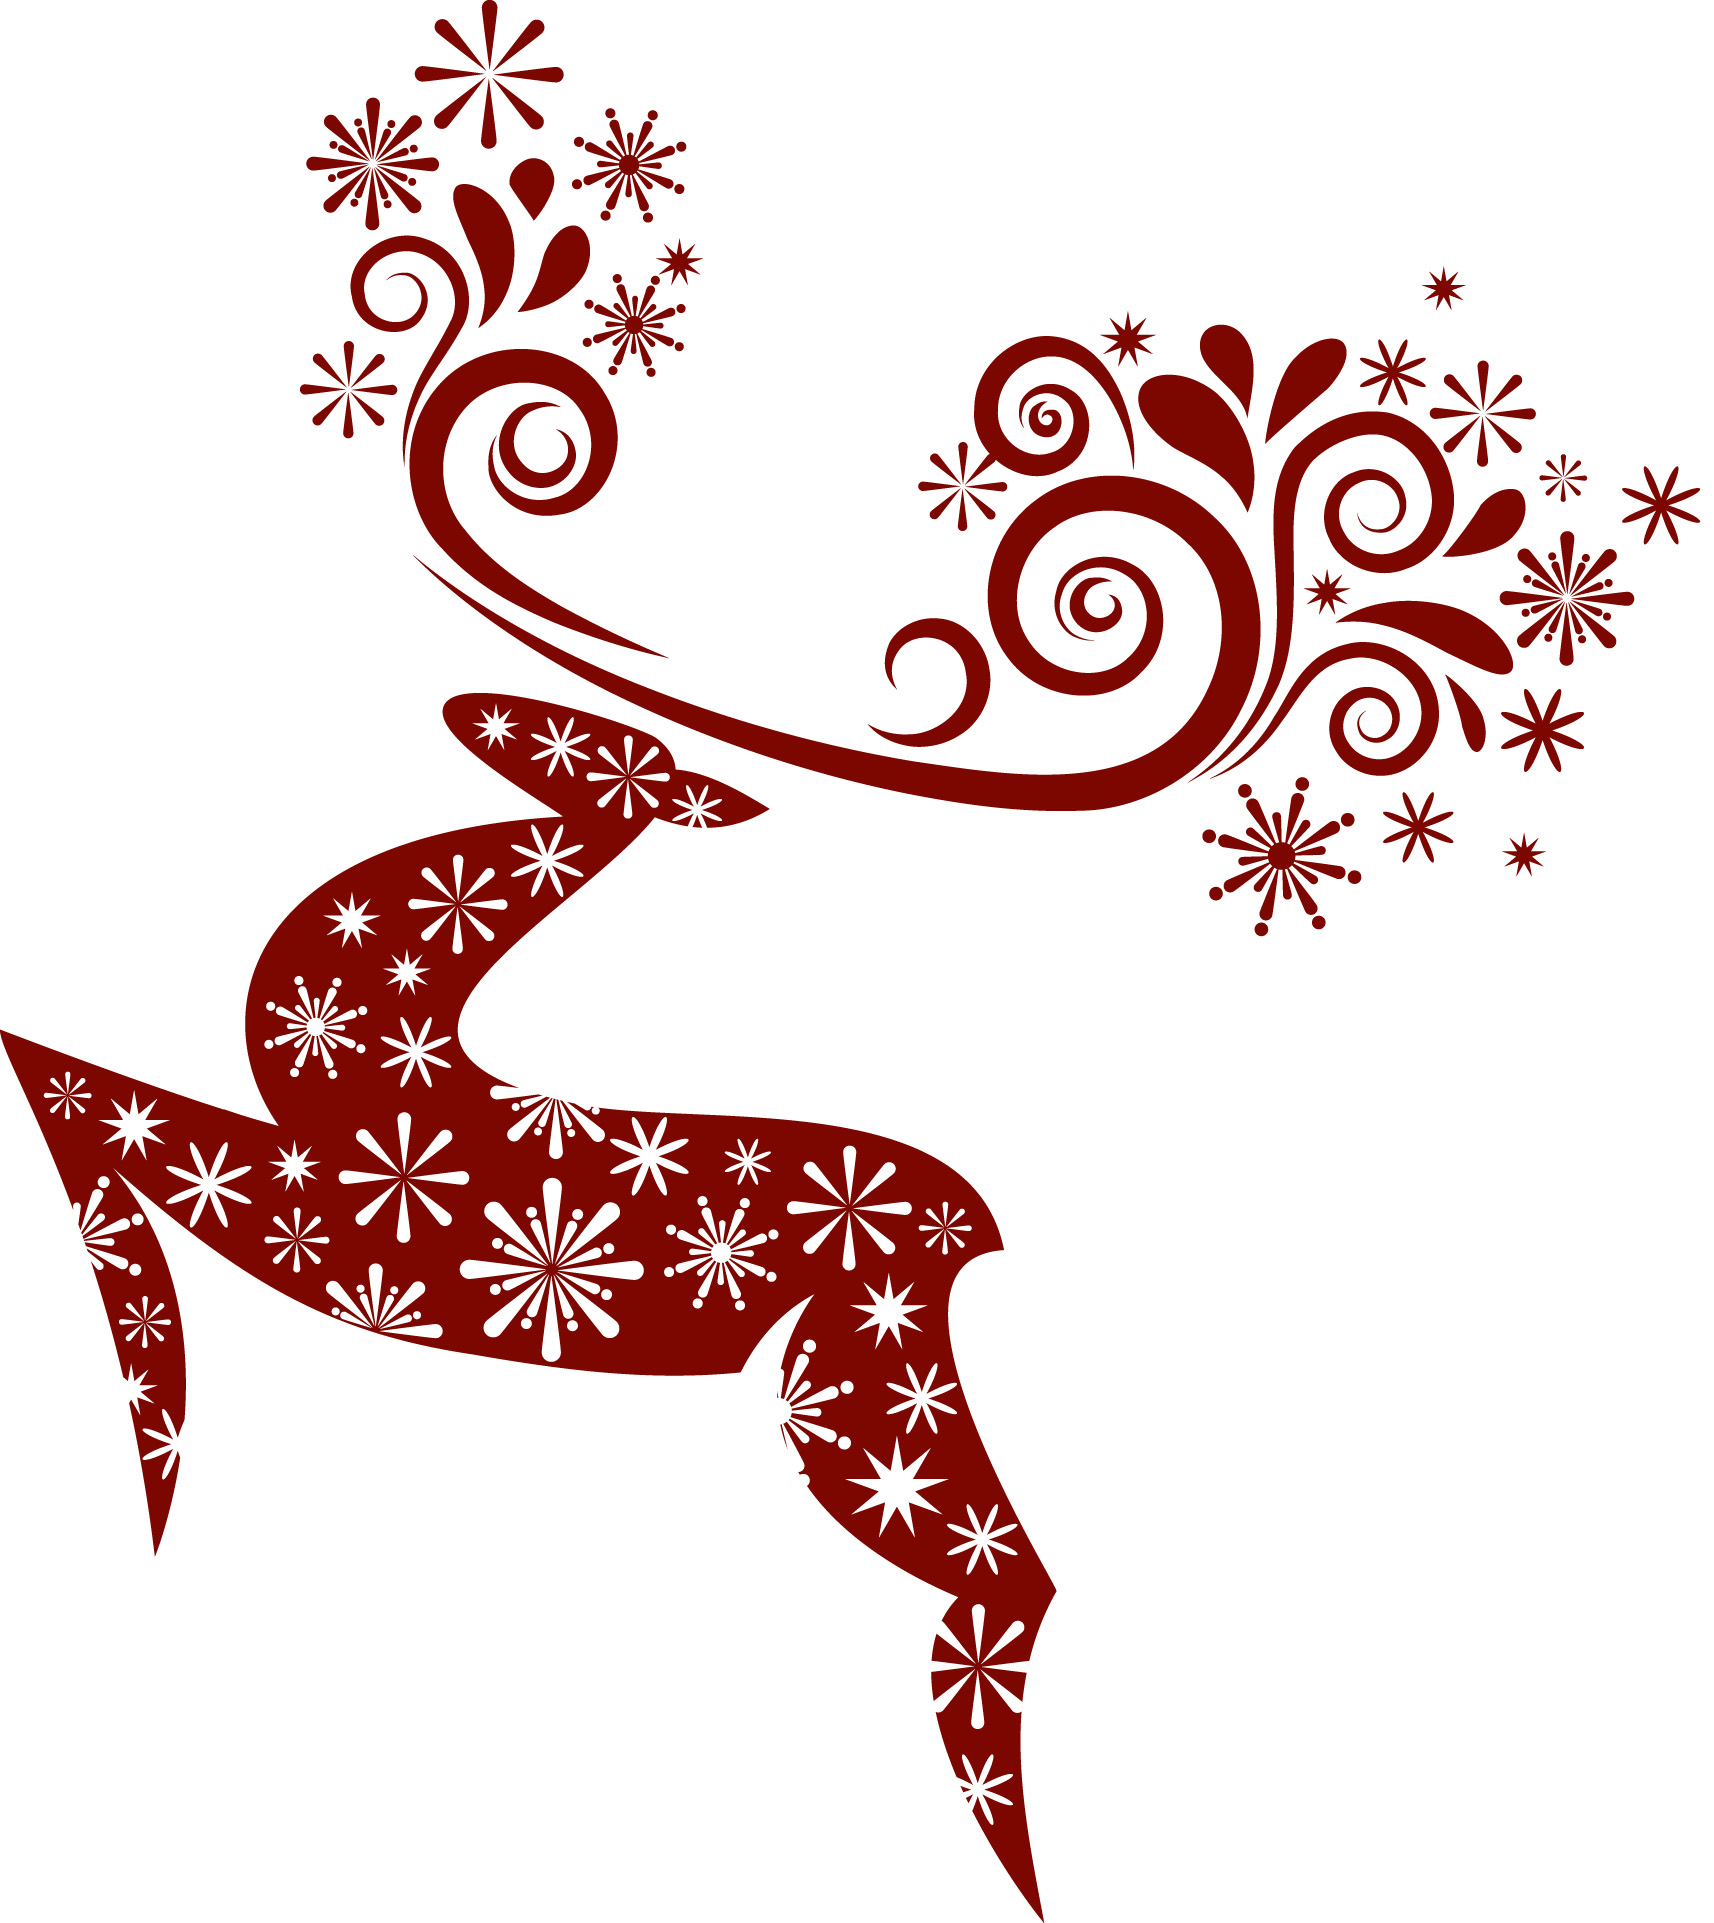 Red-Reindeer-white-snow.jpg